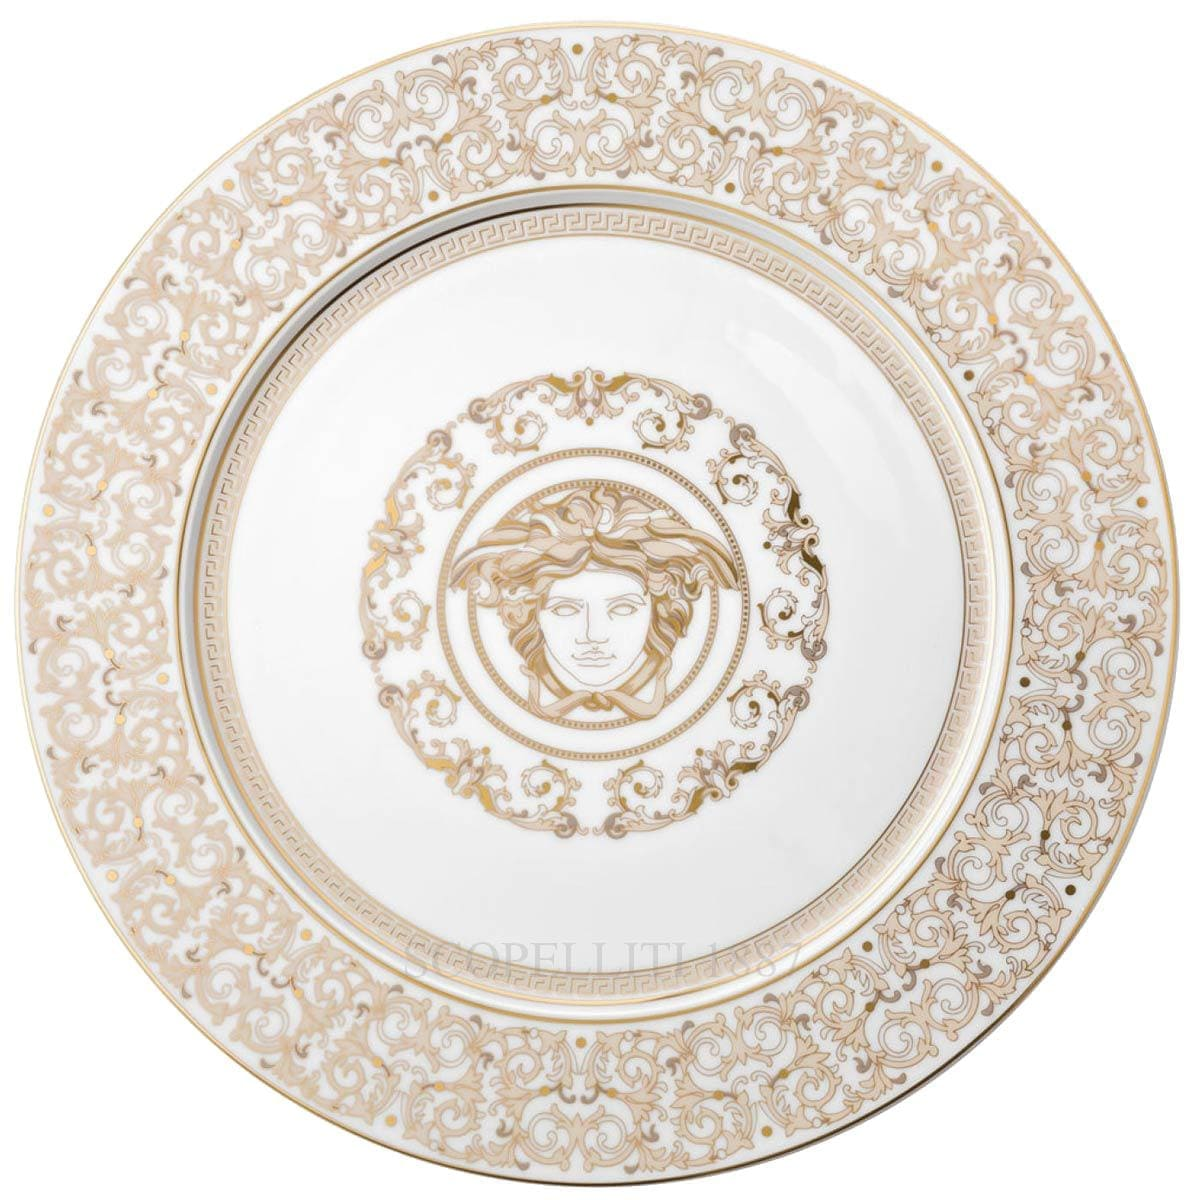 versace italian design medusa gala service plate large by rosenthal